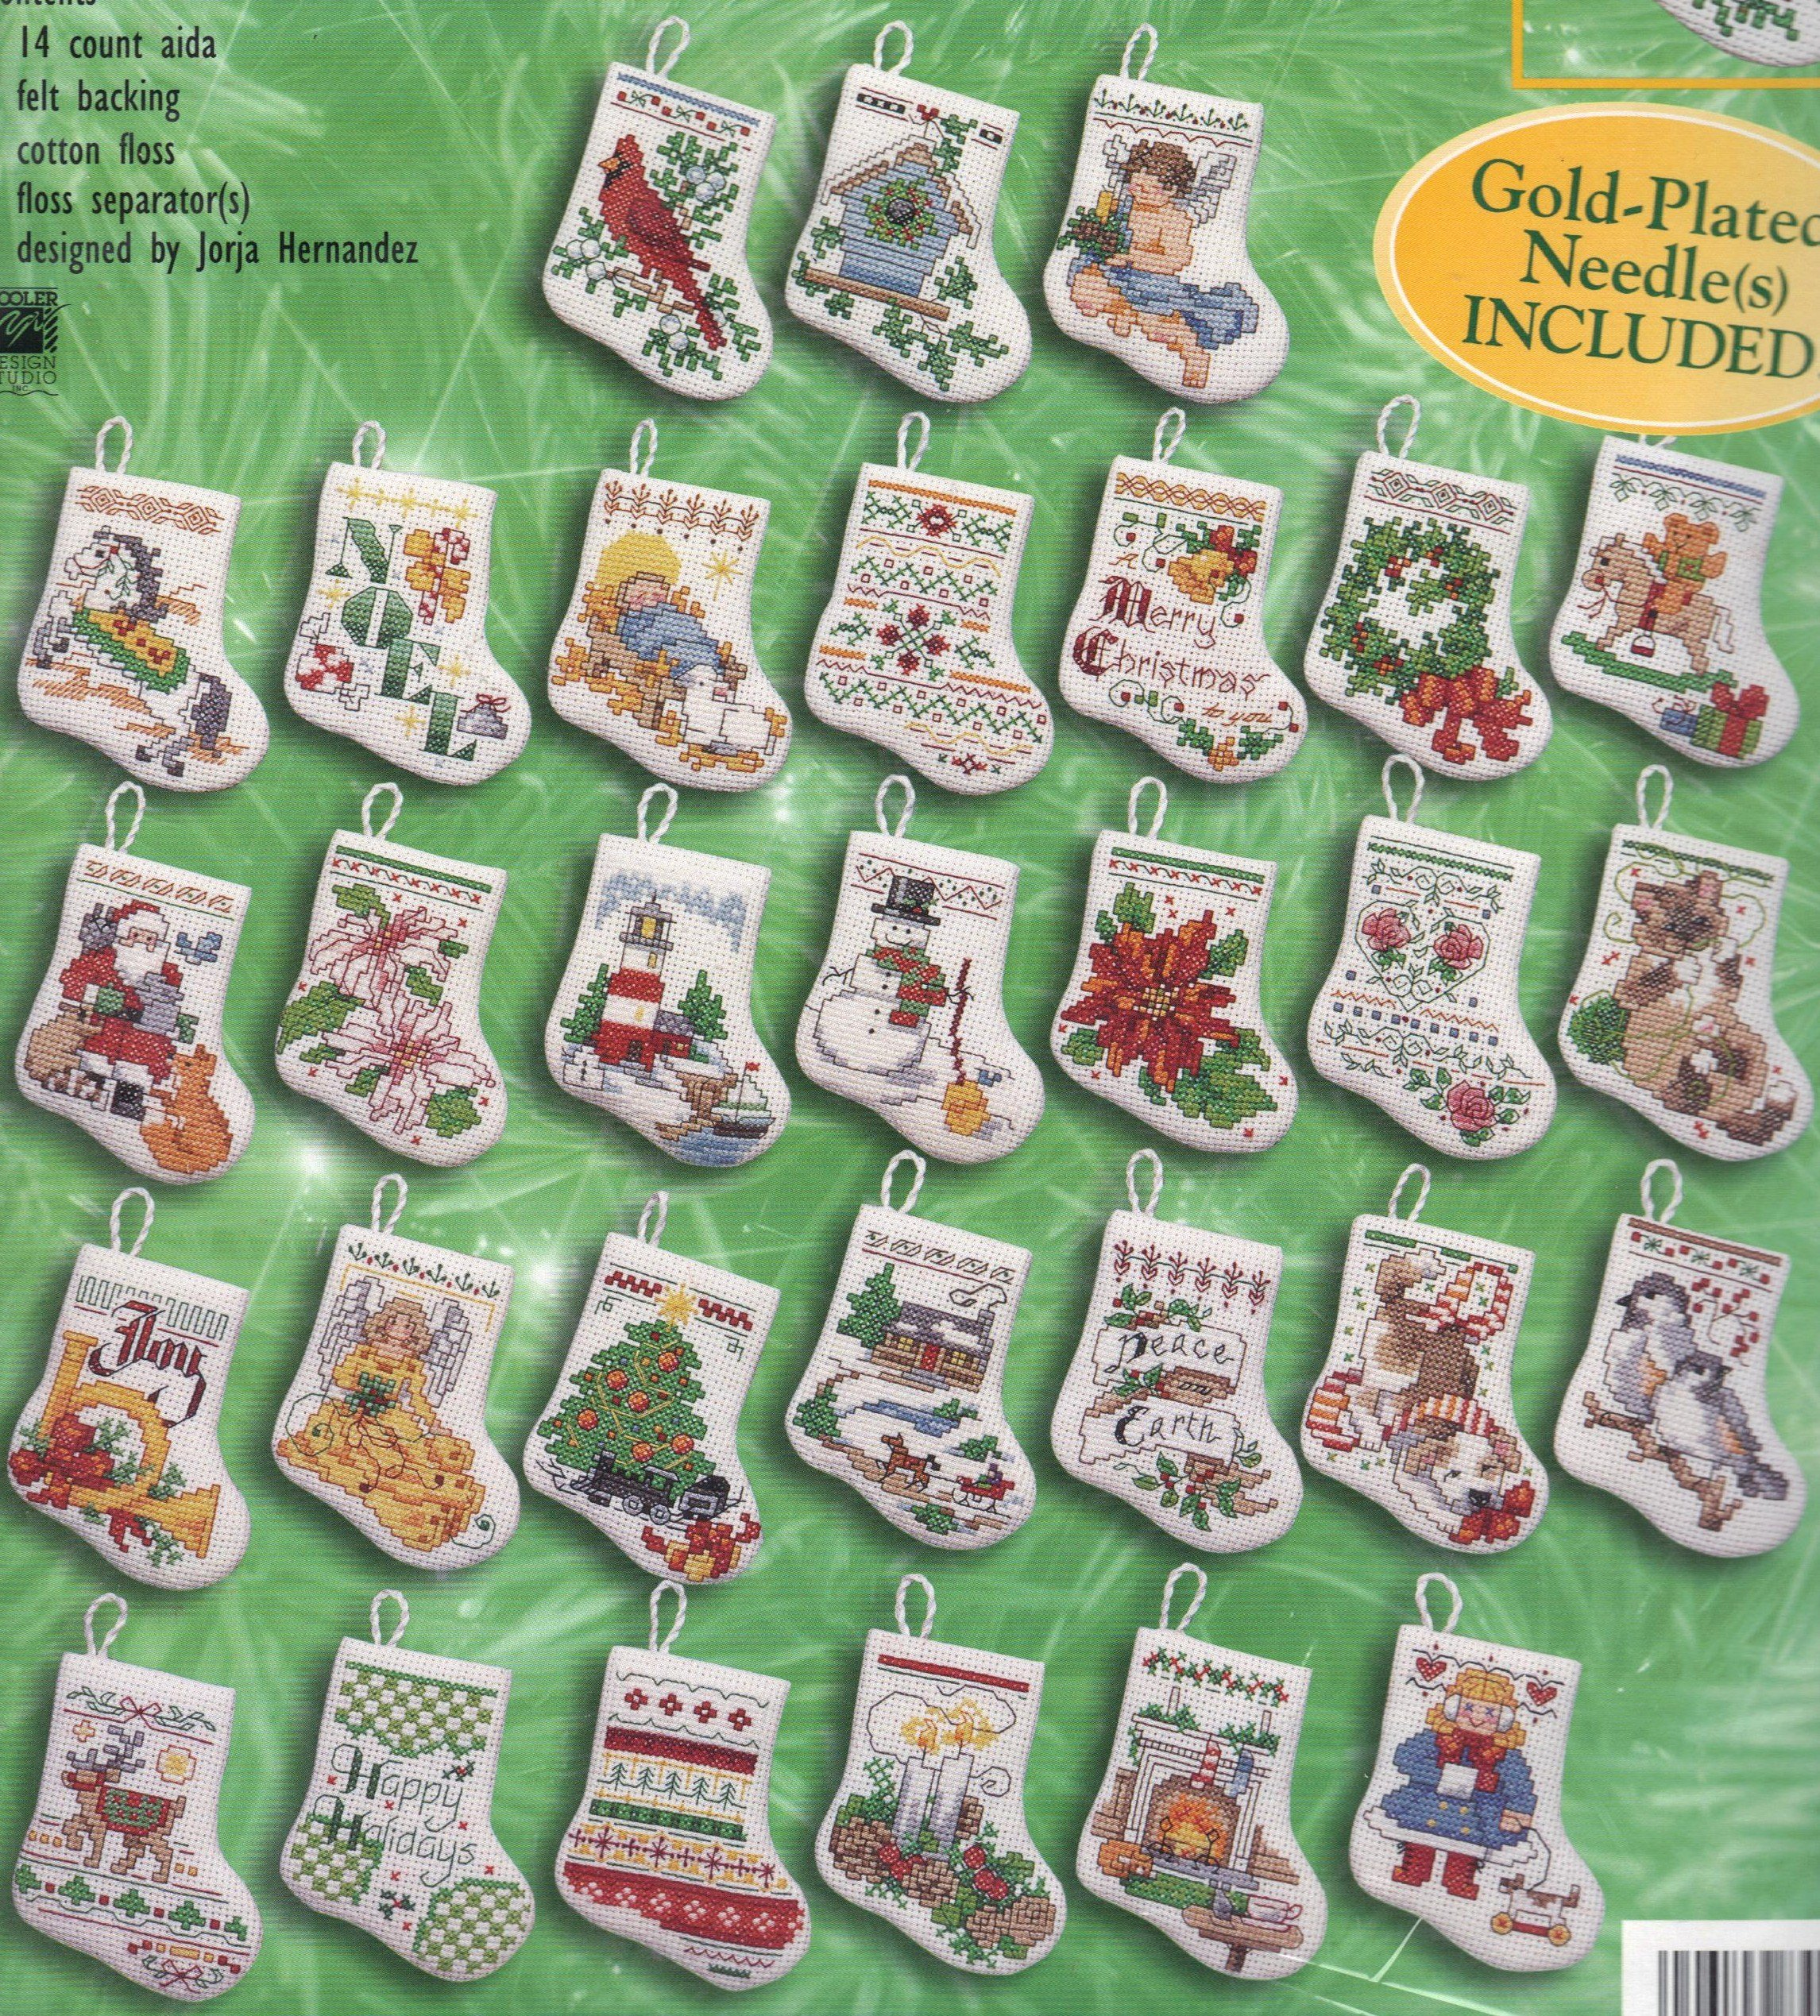 Bucilla MORE TINY STOCKINGS ORNAMENTS Counted Cross Stitch Kit Makes 30!